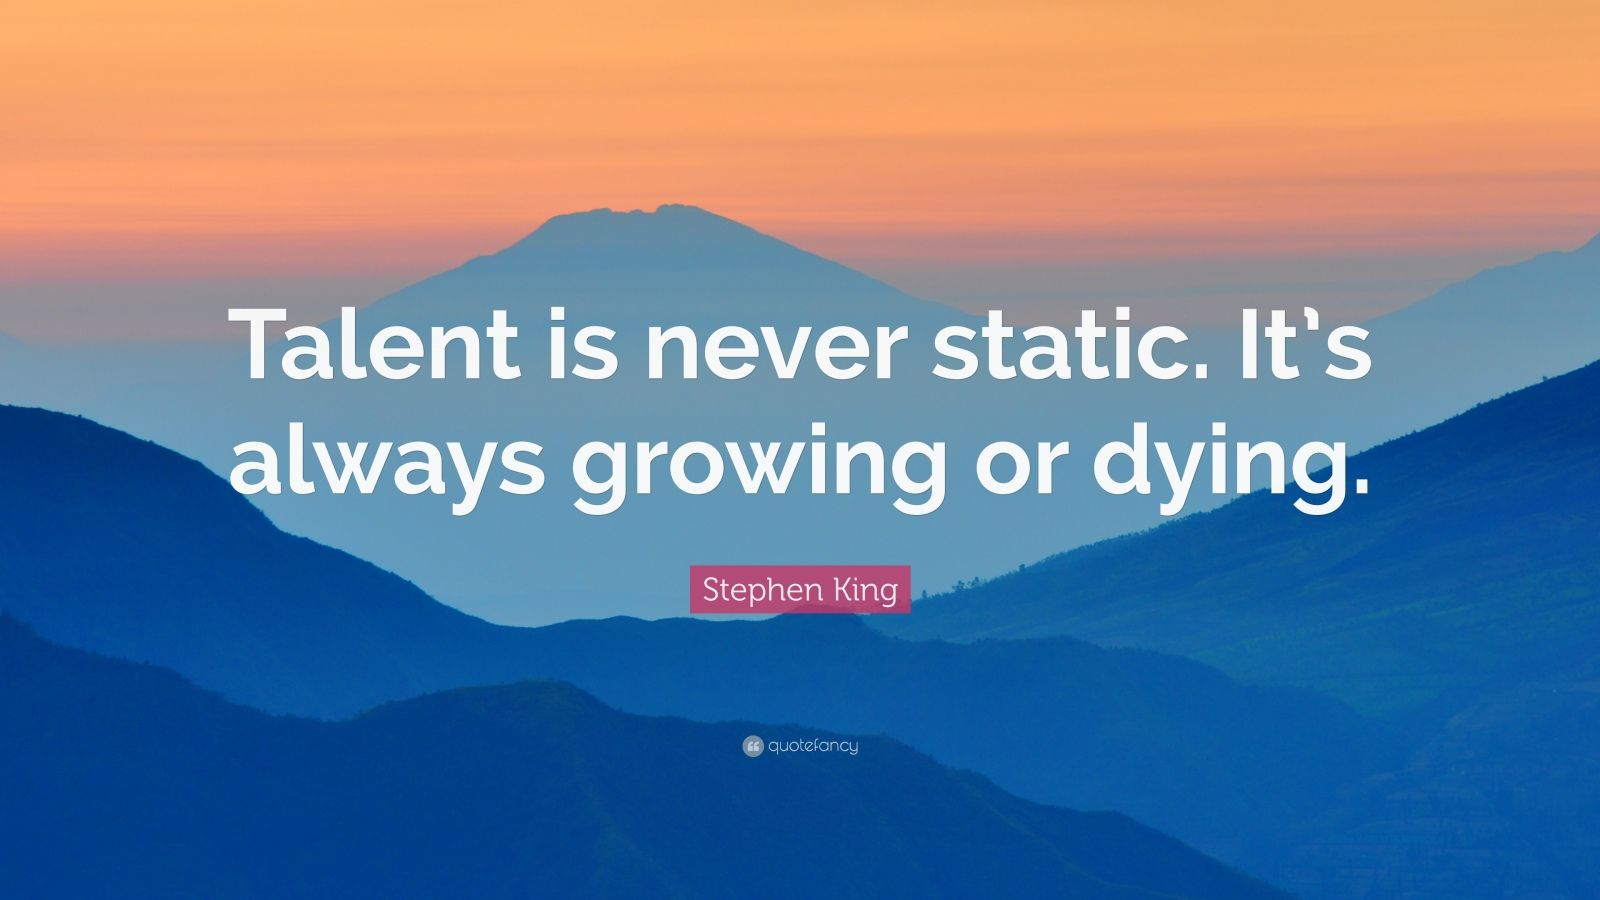 """Stephen King Quote: """"Talent is never static. It's always growing or dying."""""""